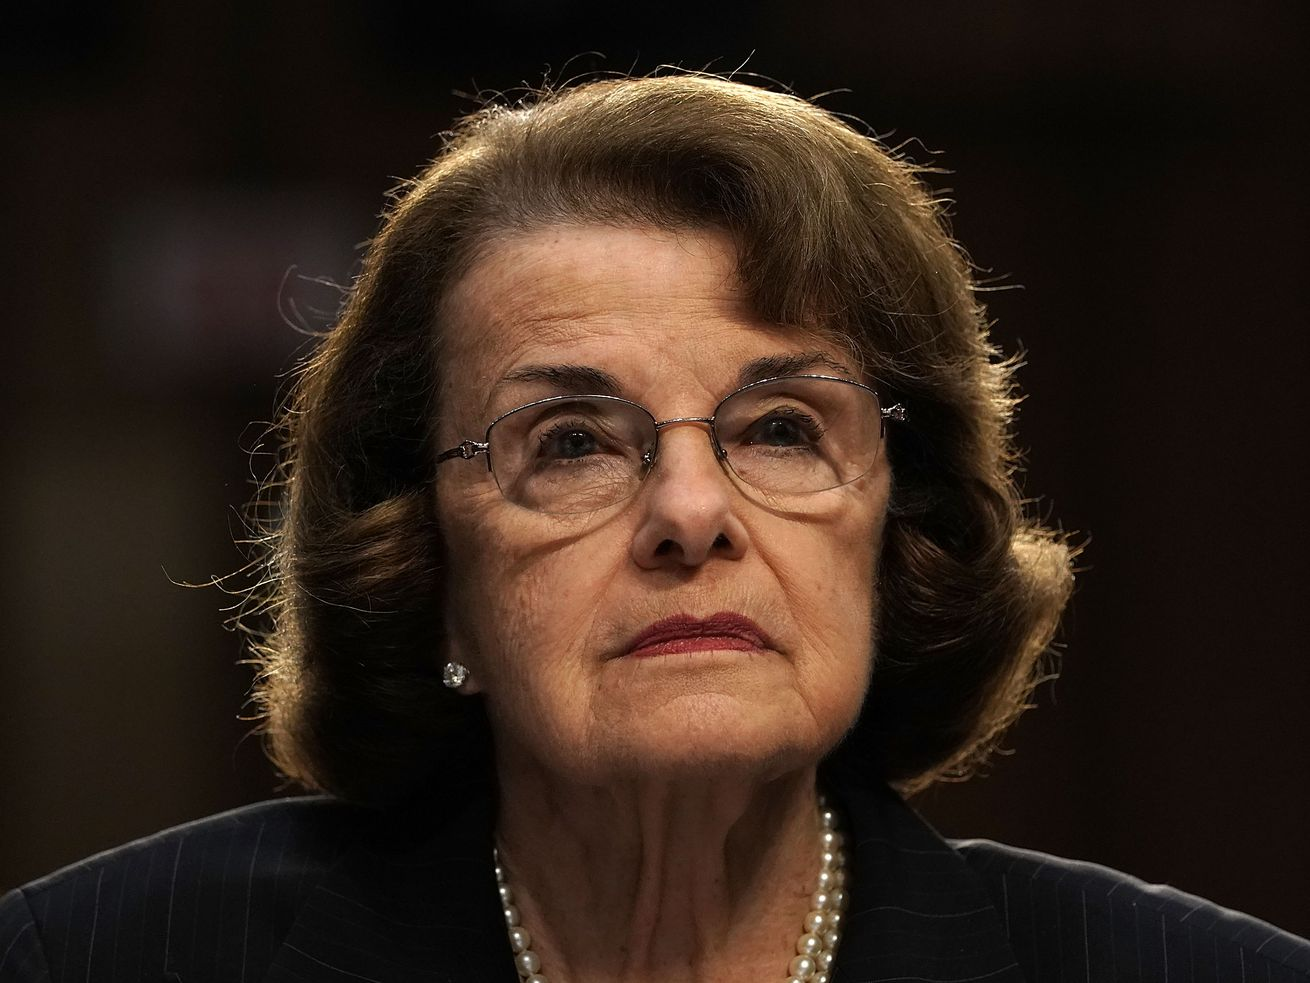 Sen. Dianne Feinstein didn't tell Democrats on the Judiciary Committee about allegations that Brent Kavenaugh had attempted to sexually assault someone while in high school.